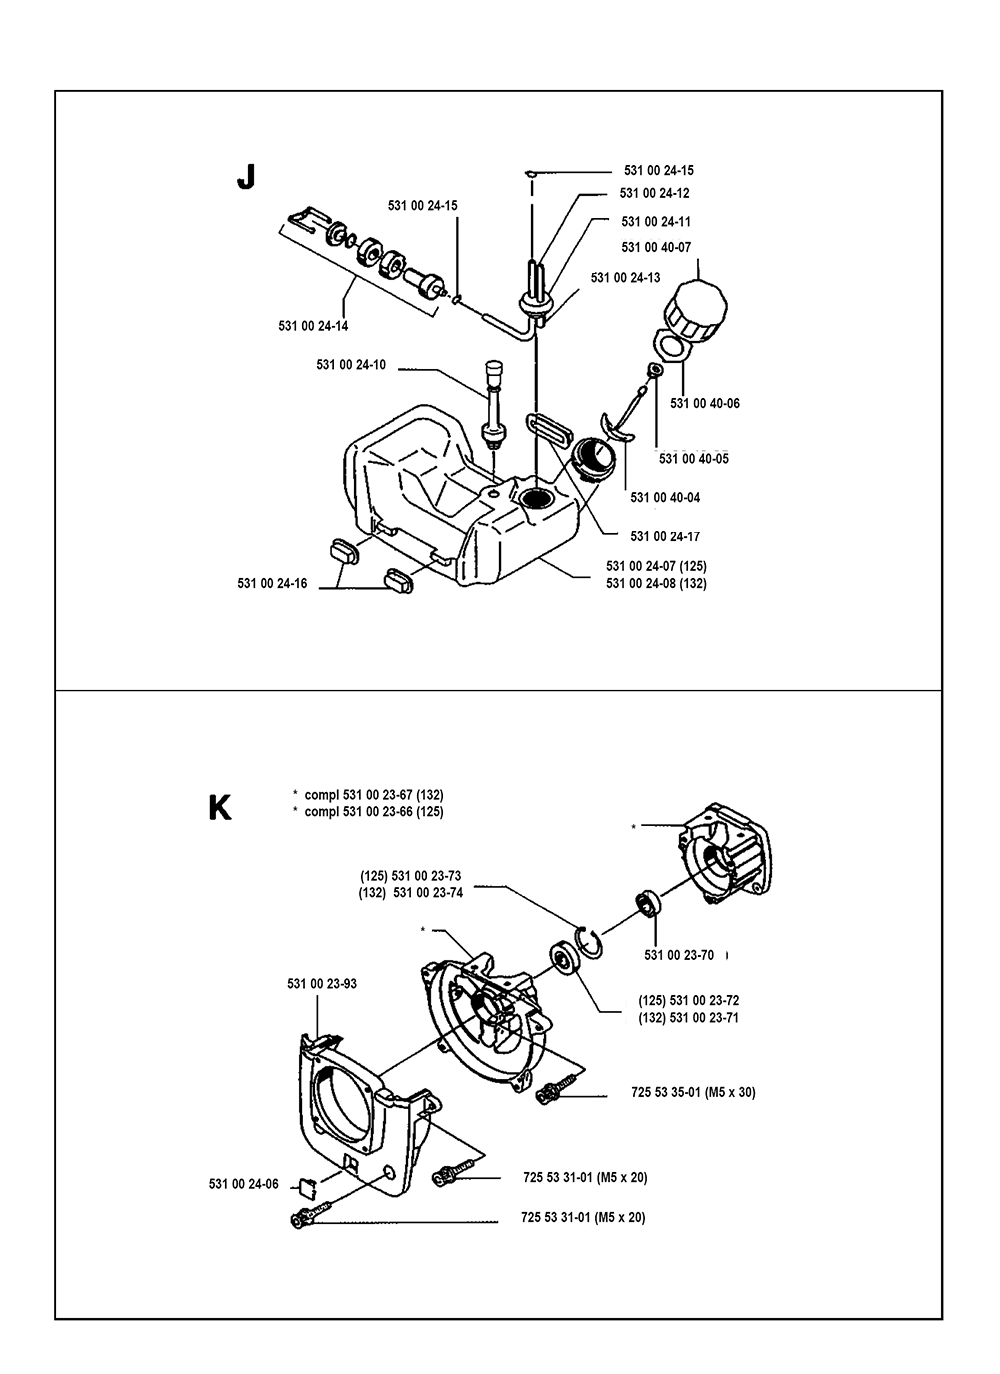 125 L-(I9300002)-Husqvarna-PB-3Break Down